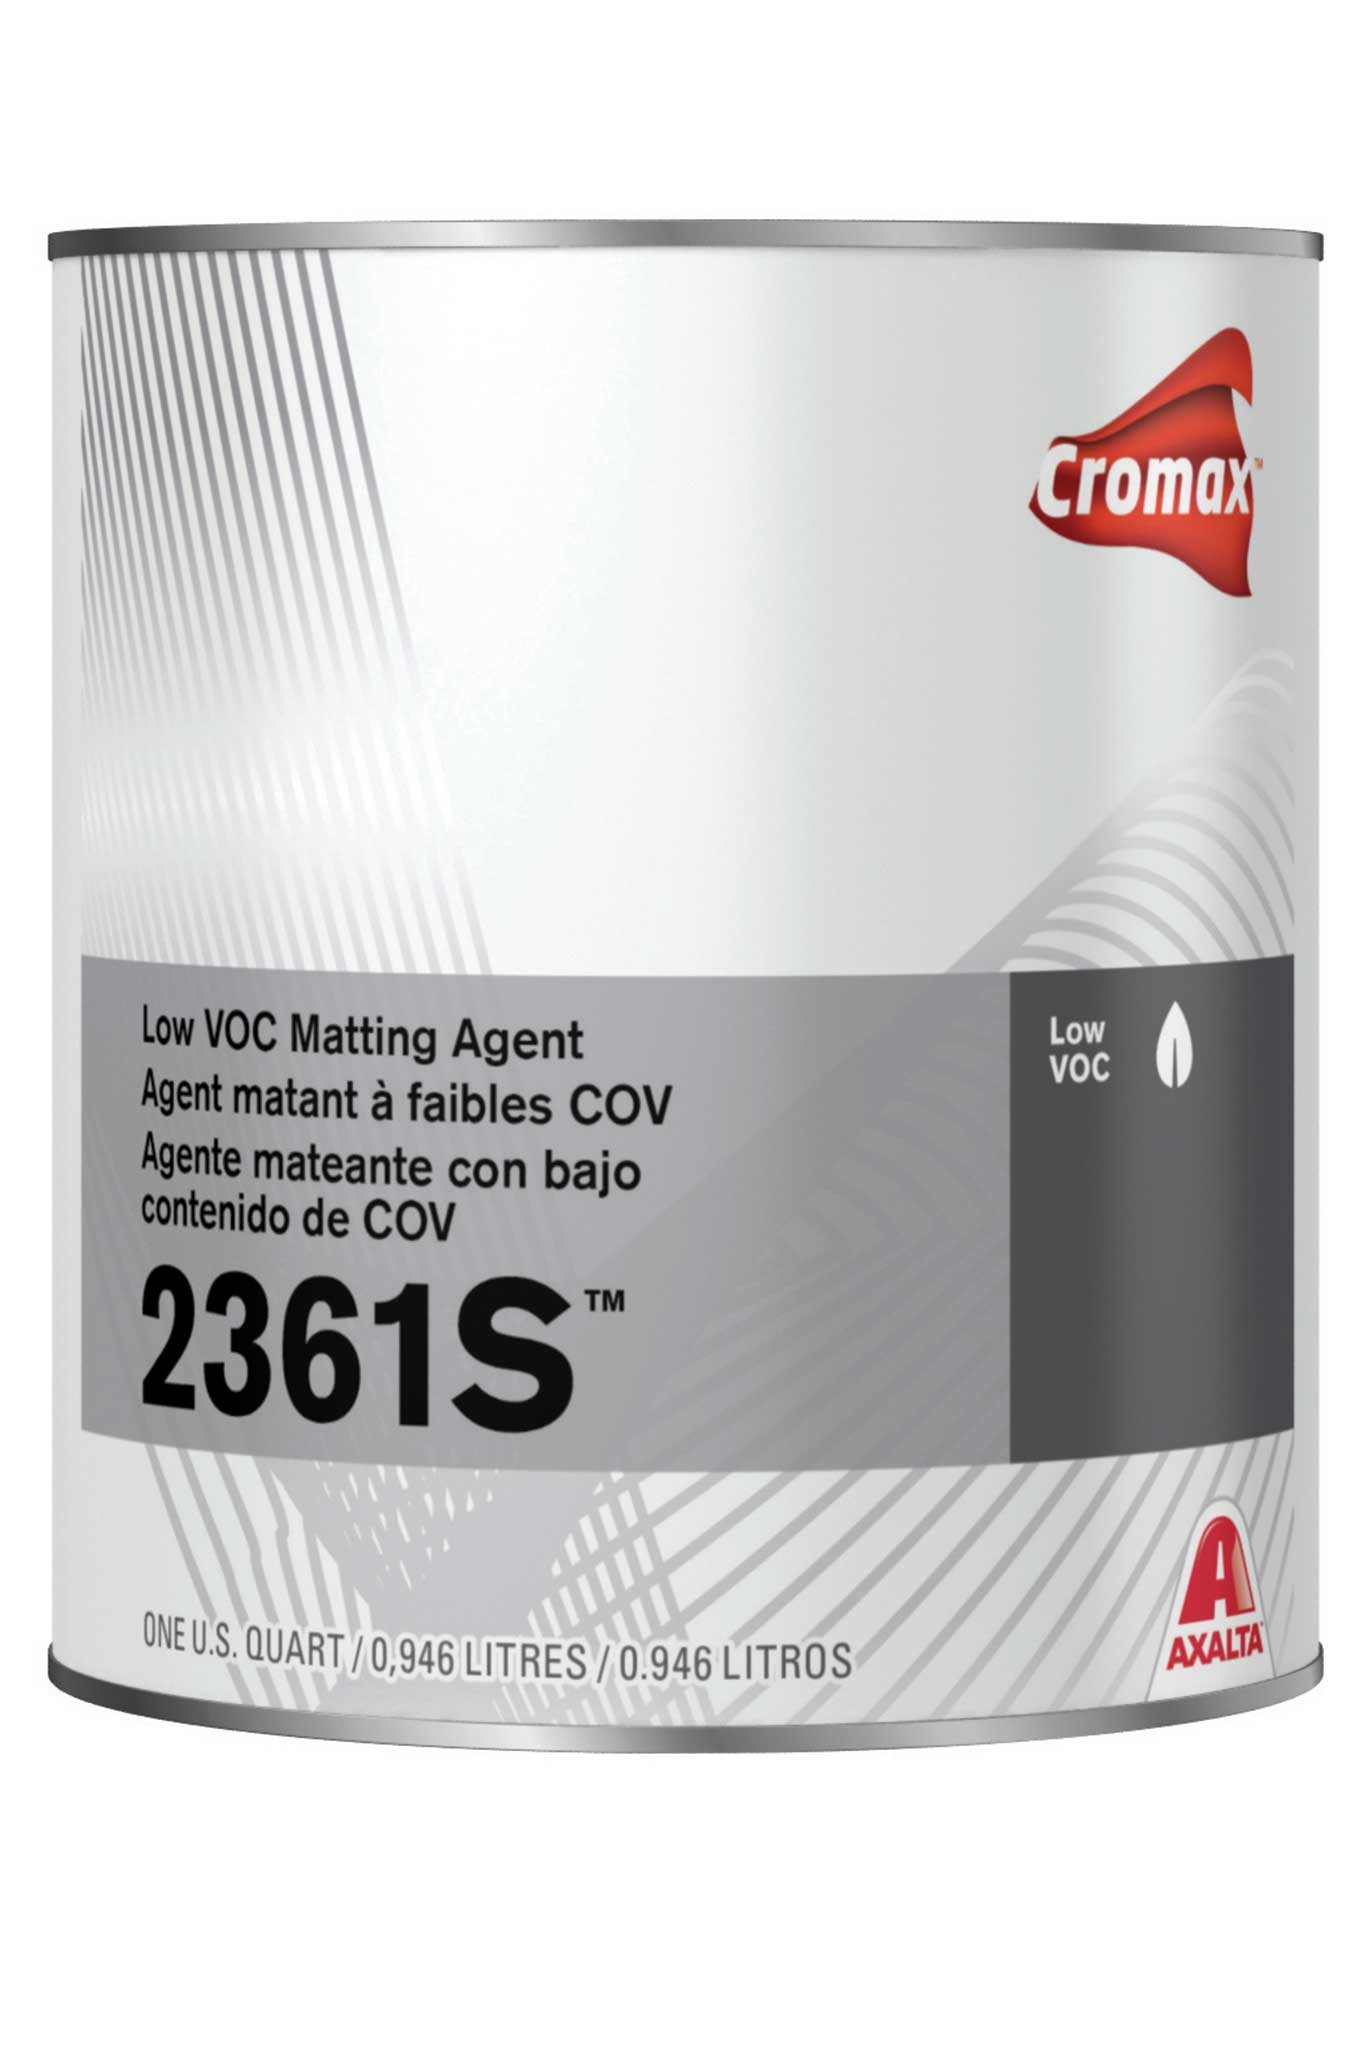 axalta low voc matting agent